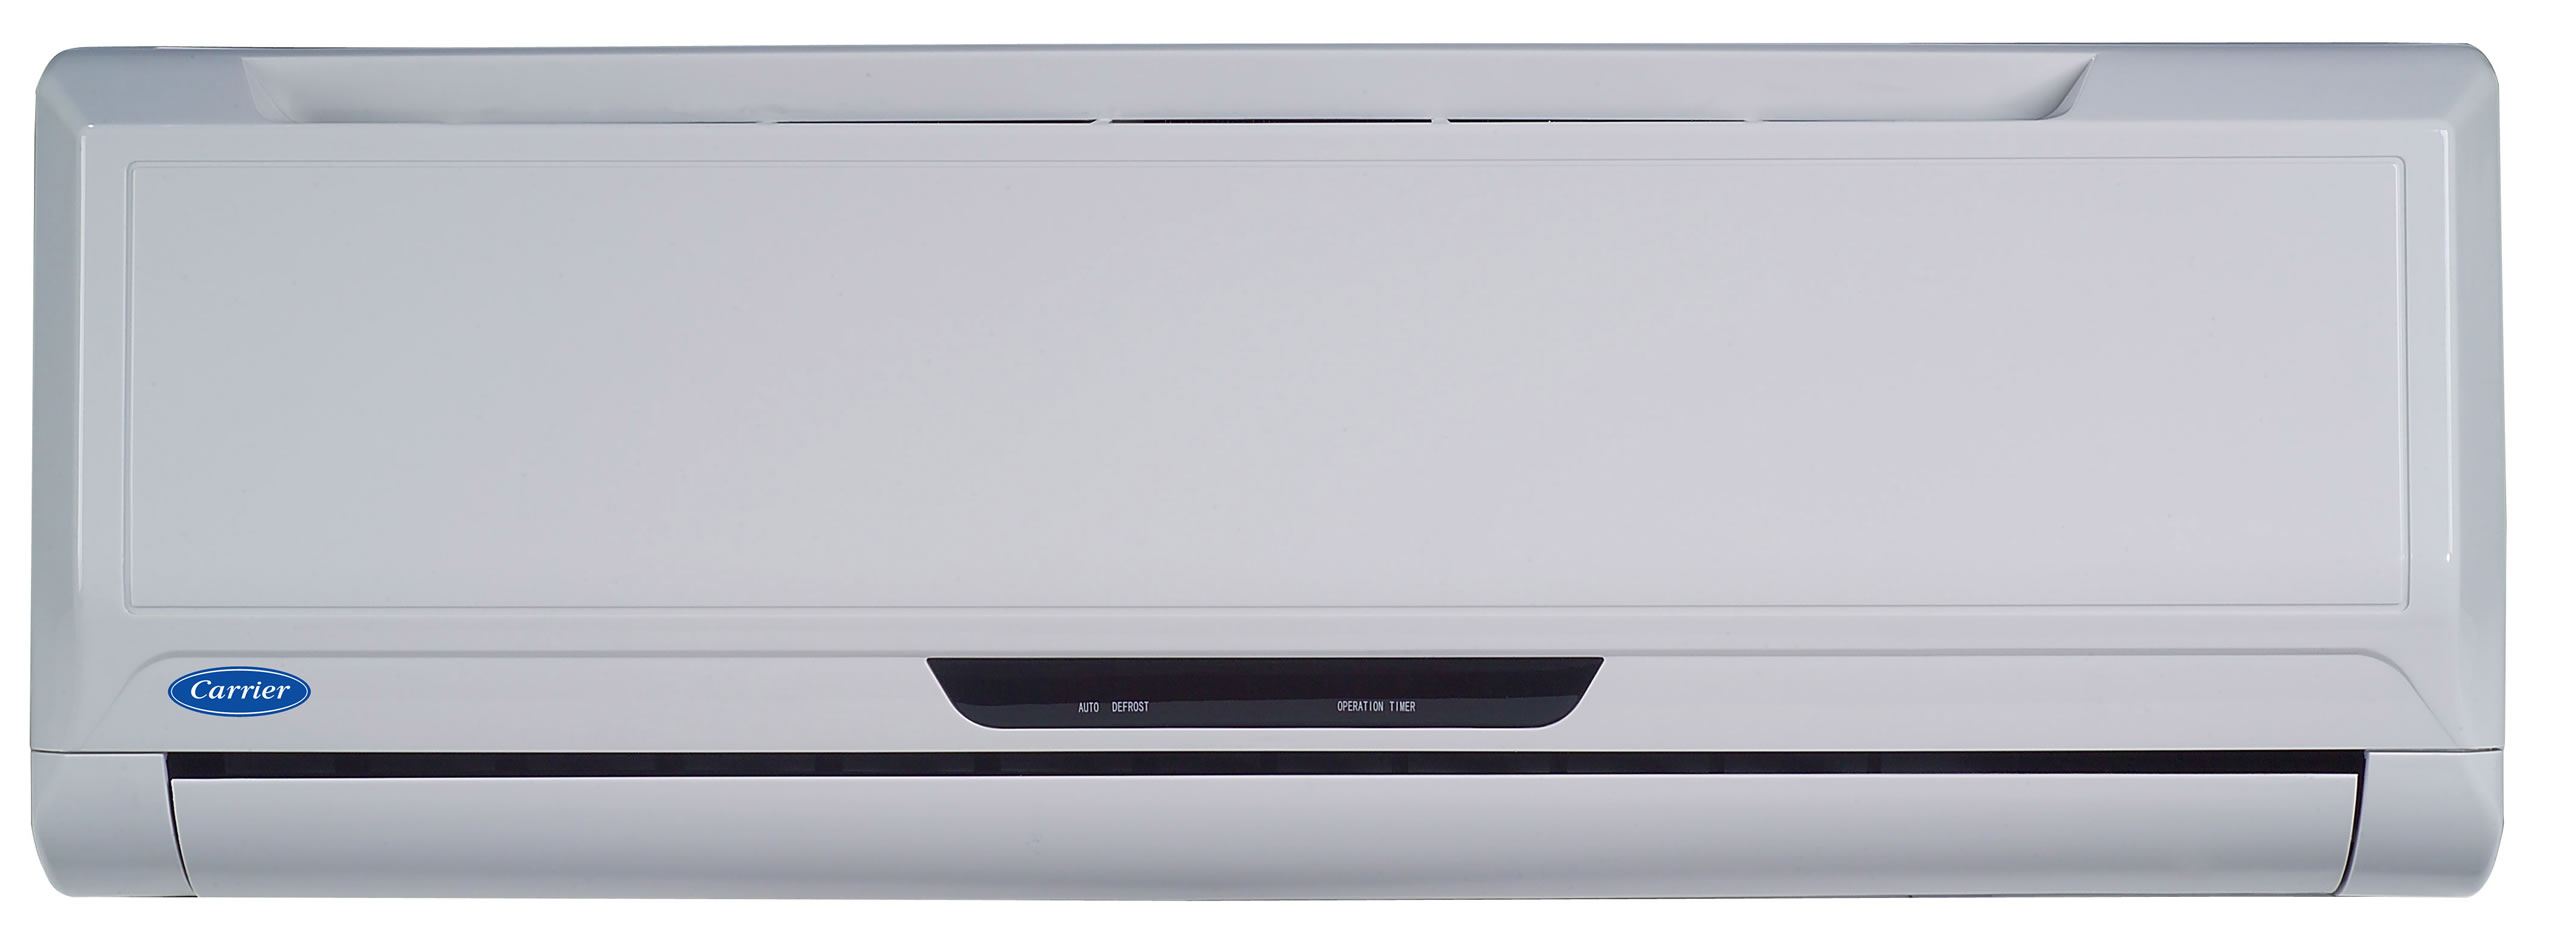 Carrier Air Conditioners Service | Clements